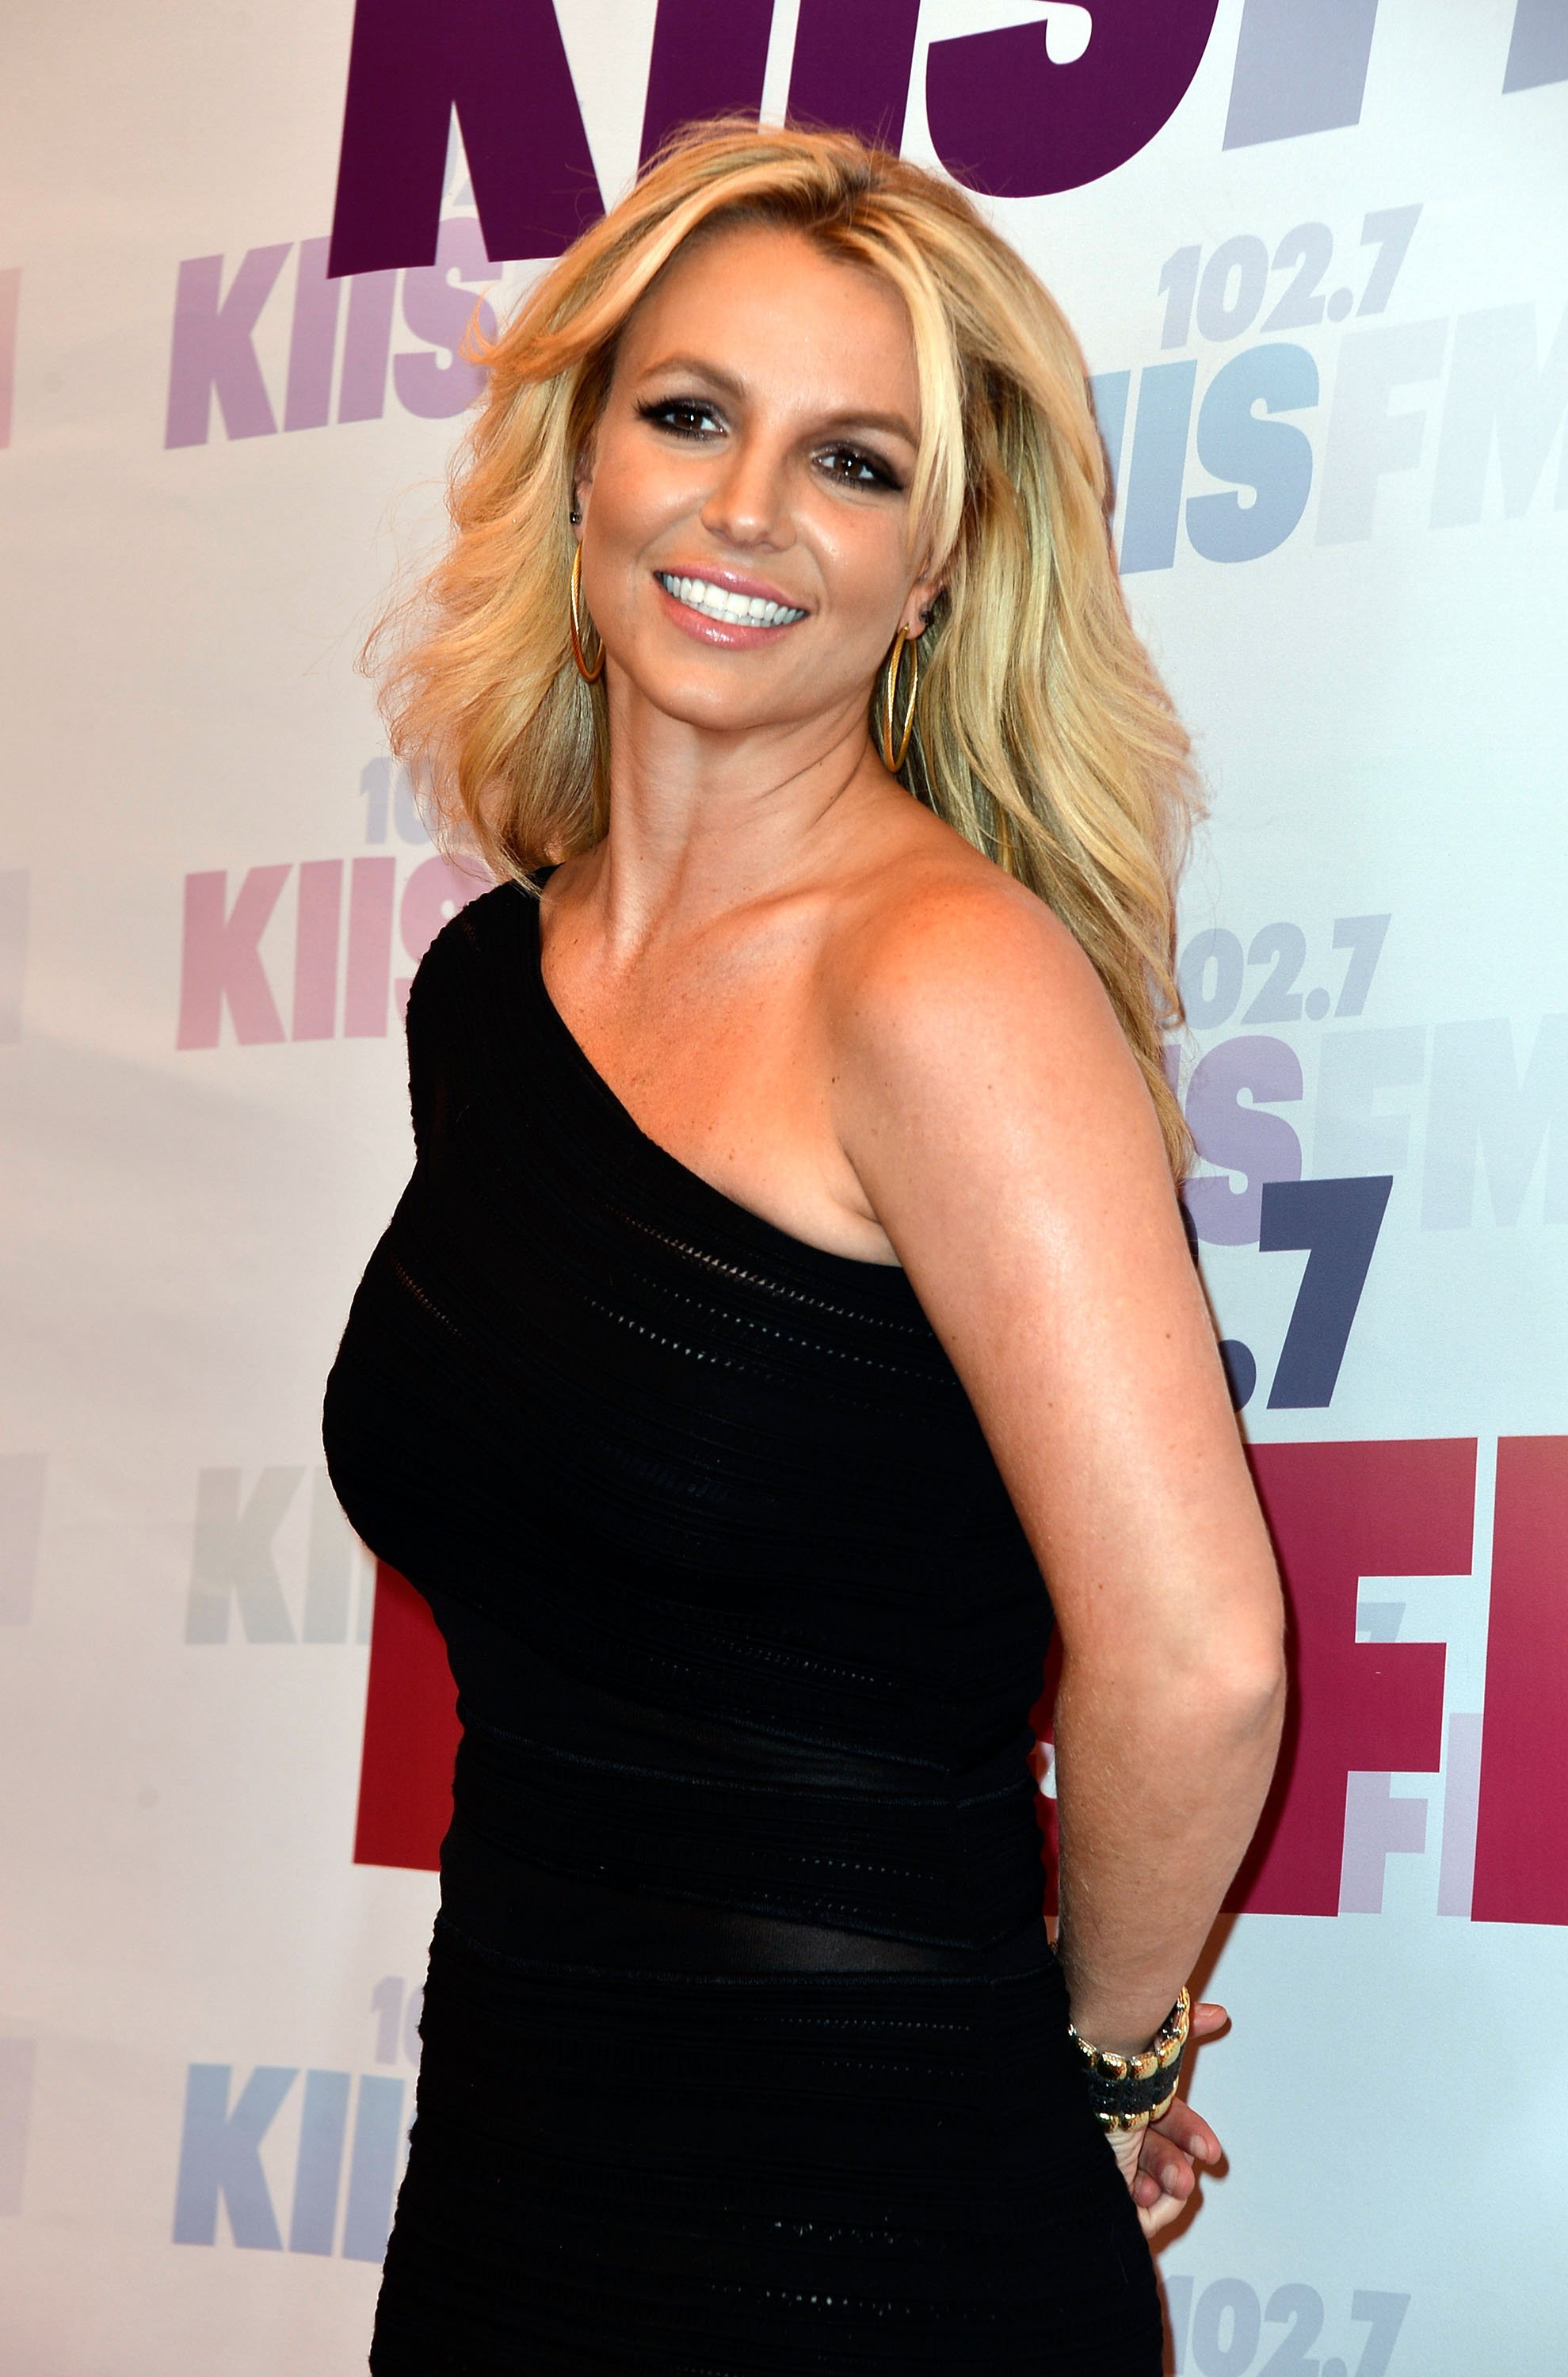 Britney Spears attends 102.7 KIIS FM's Wango Tango on May 11, 2013, in Carson, California. | Photo: Getty Images.